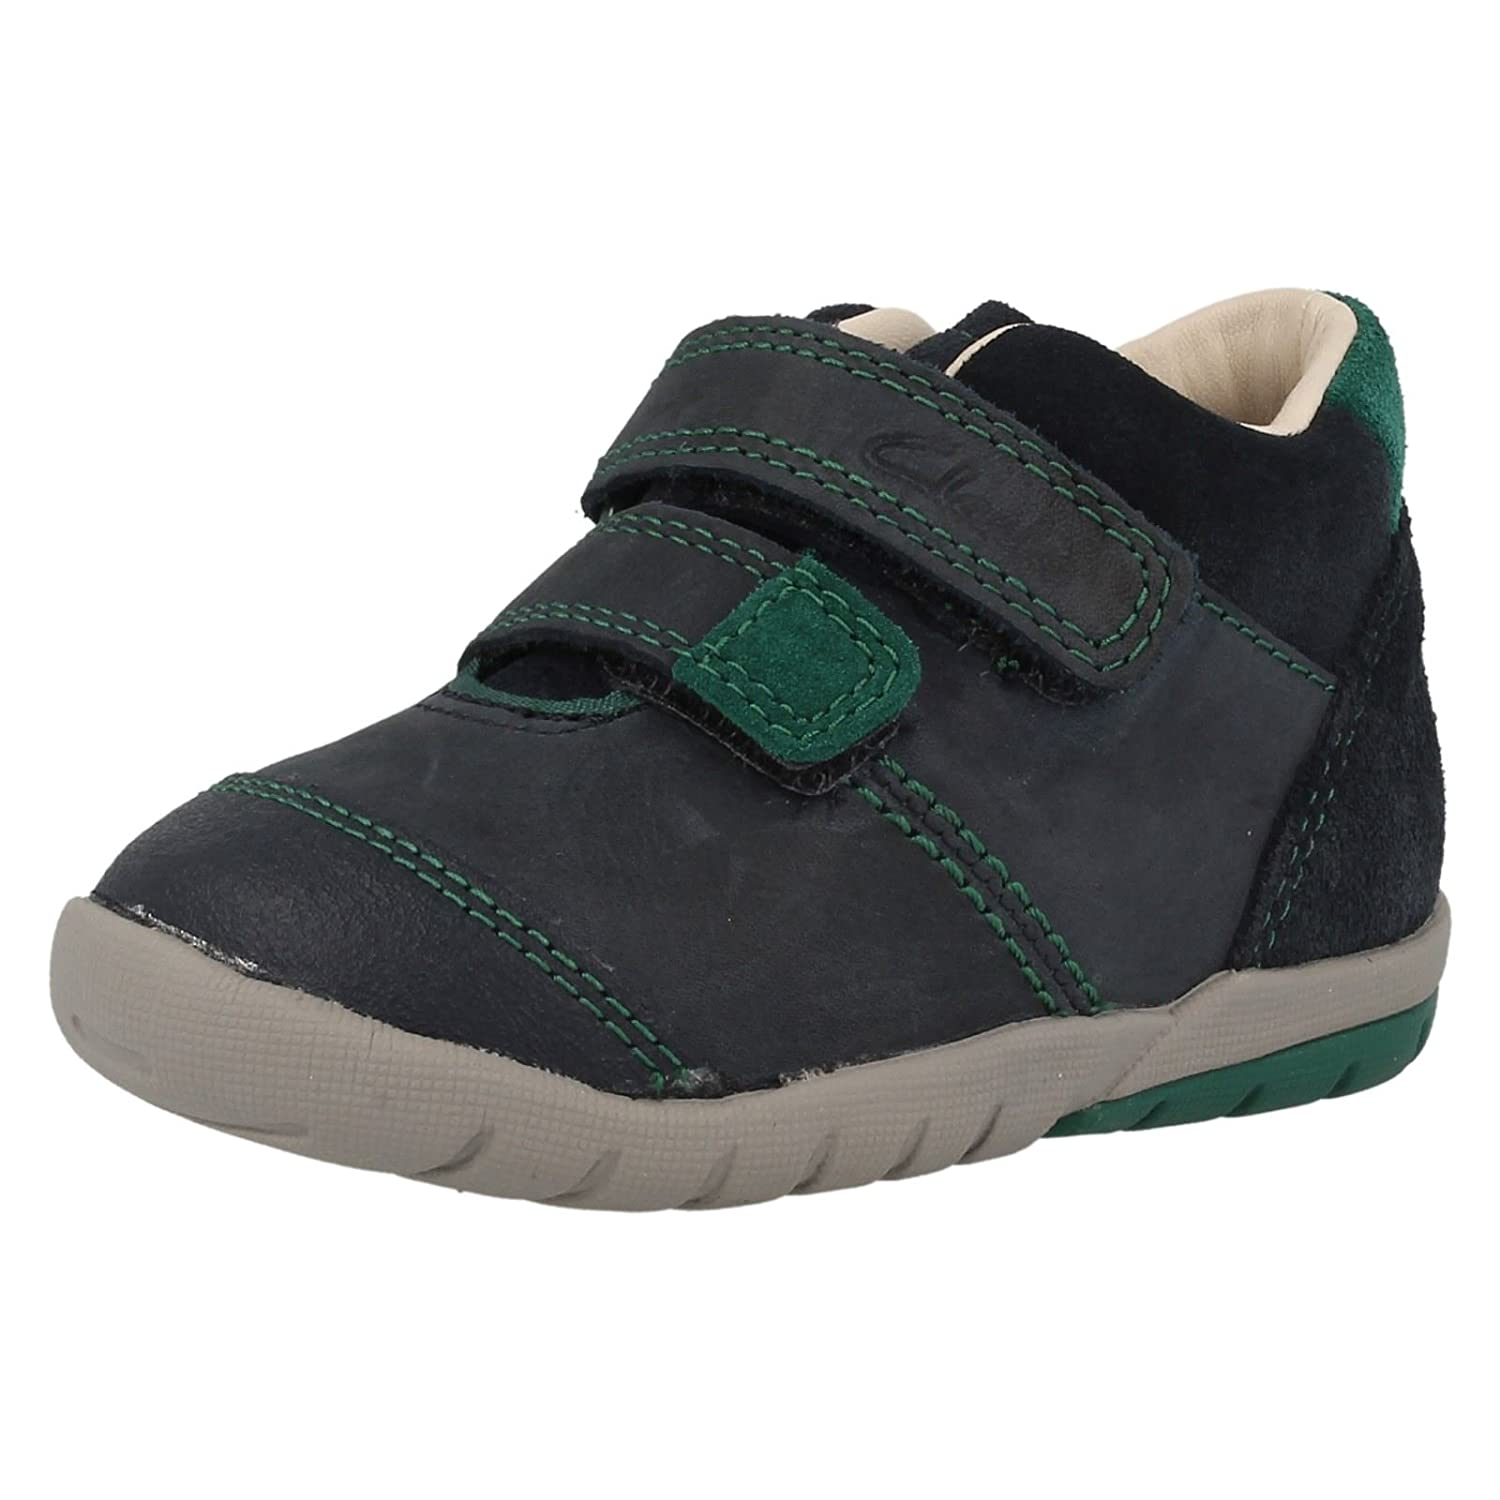 f6d28b1cc58 Clarks Softly Joe Boys First Boots Child UK 7.5 G Blue  Amazon.co.uk  Shoes    Bags